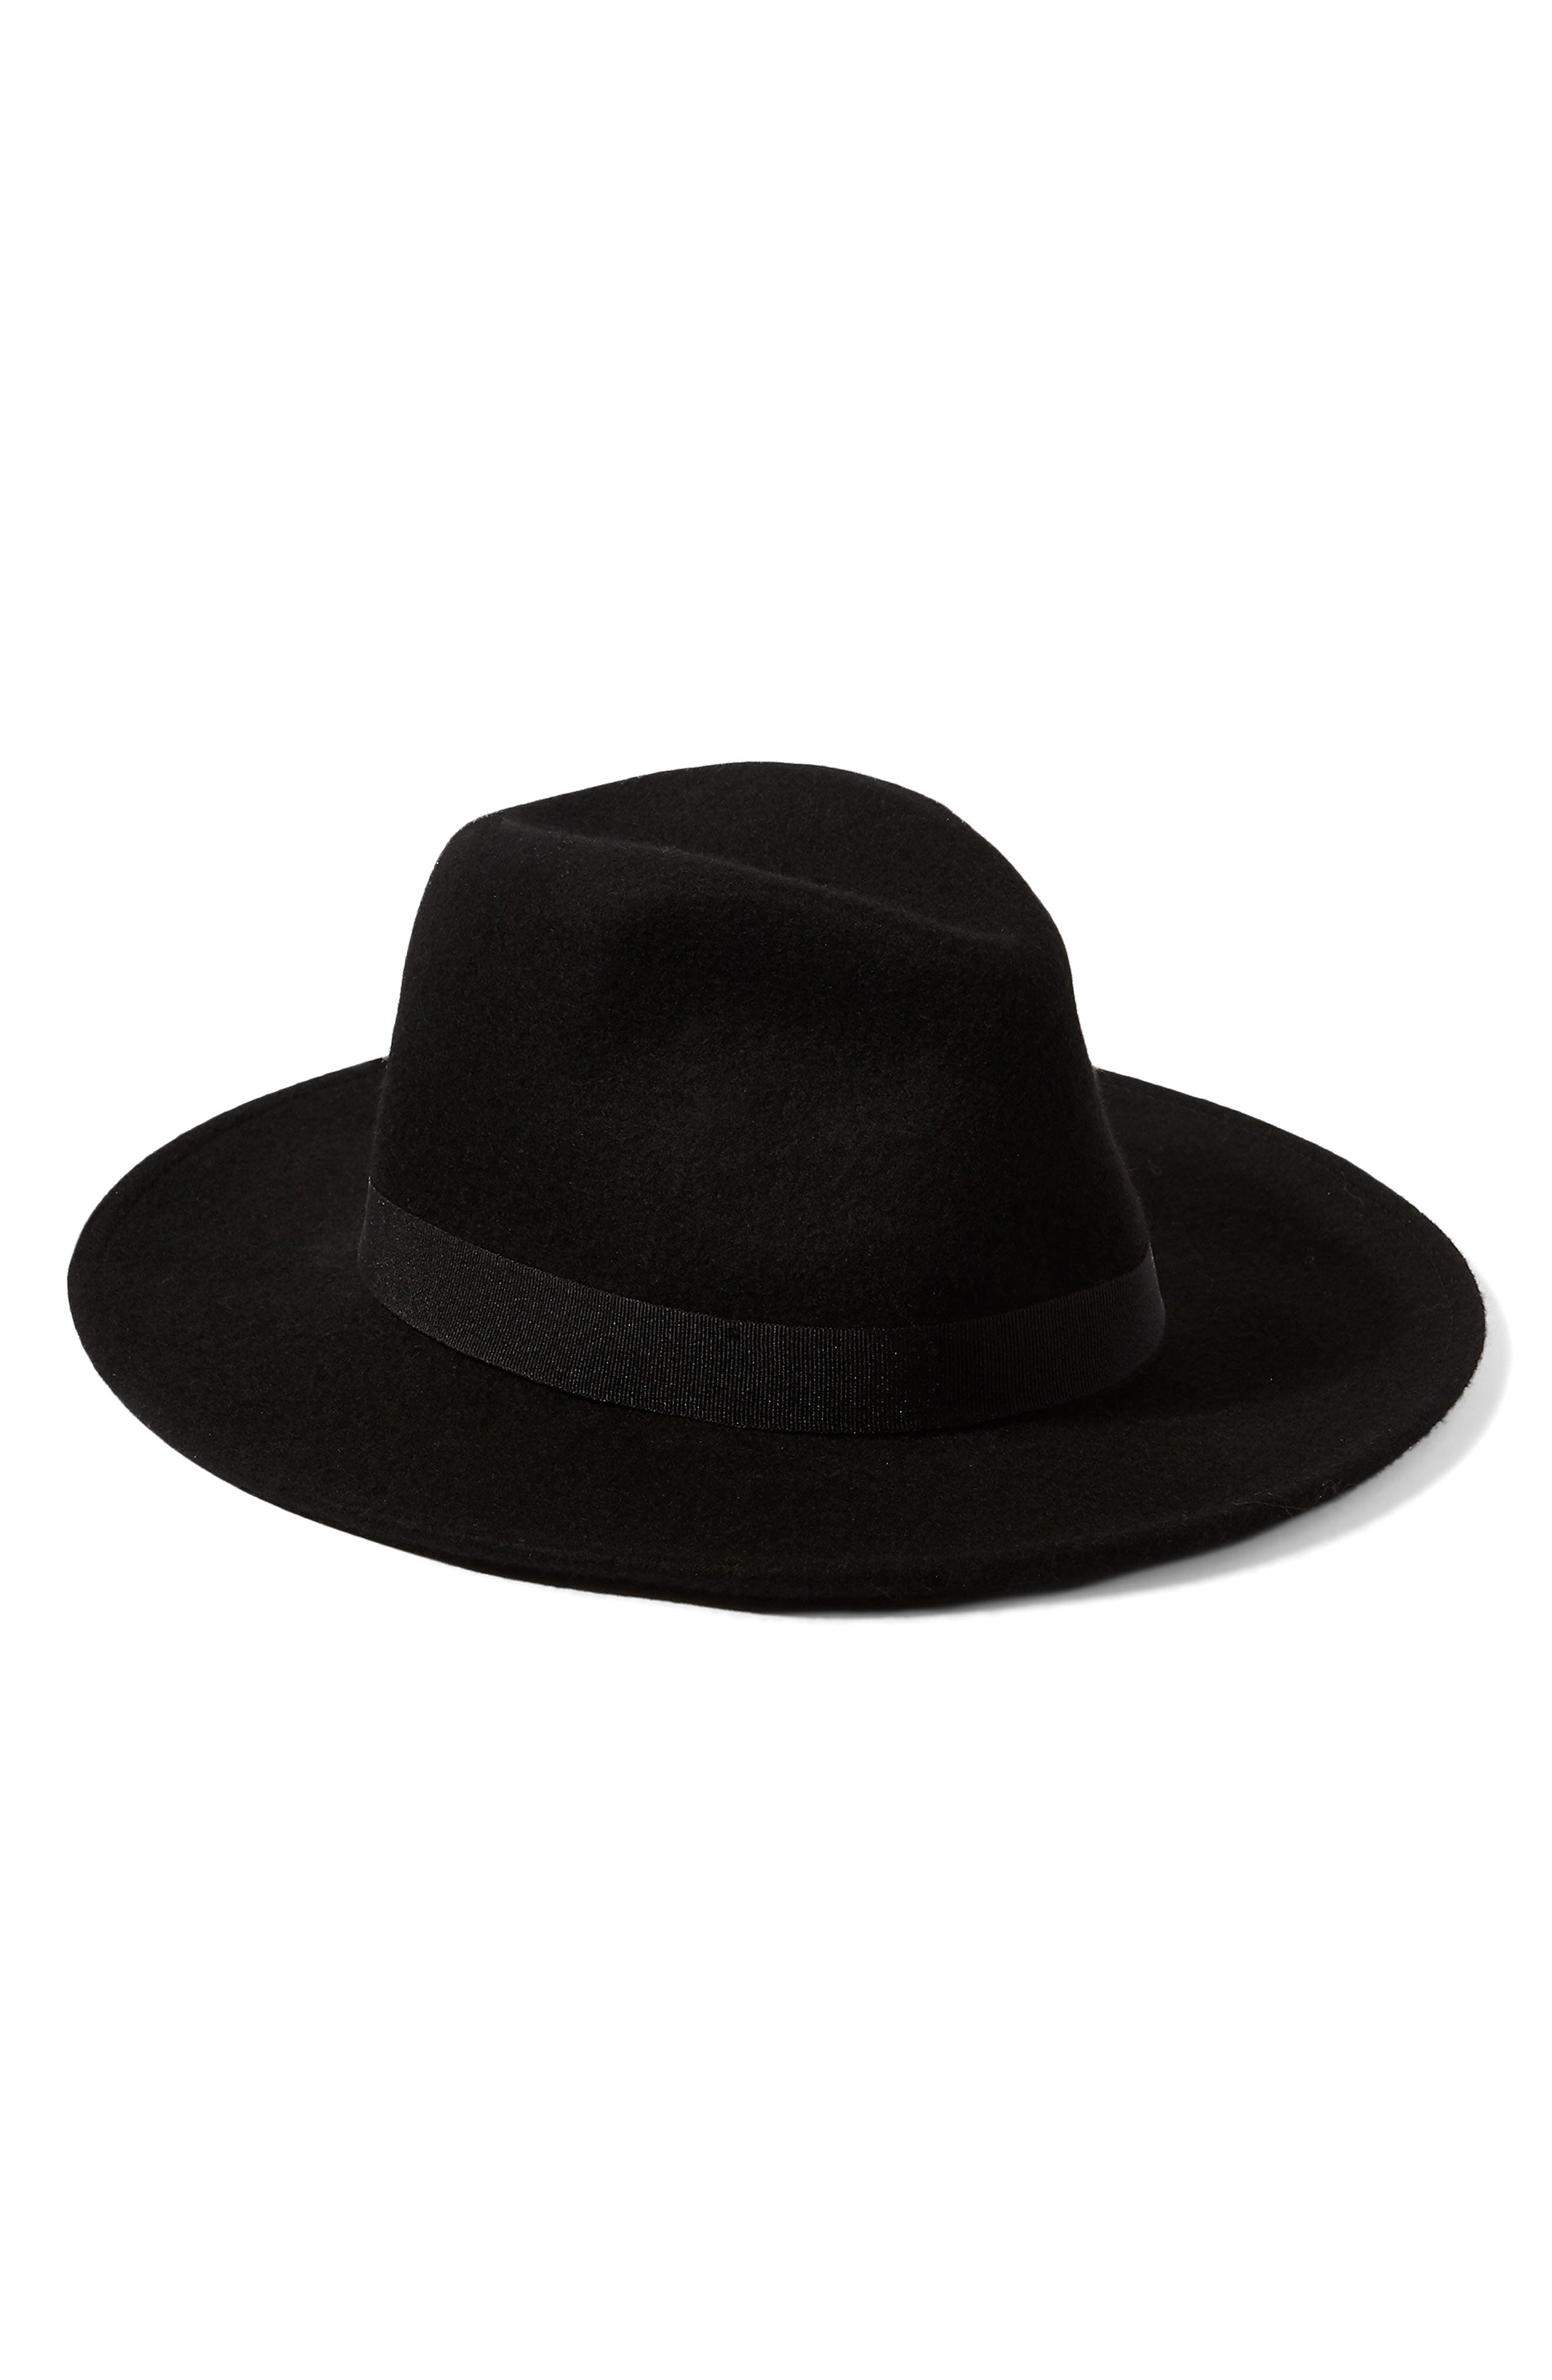 f759f6f59ae825 Men's Fedora Hats - Country / Outdoors Clothing